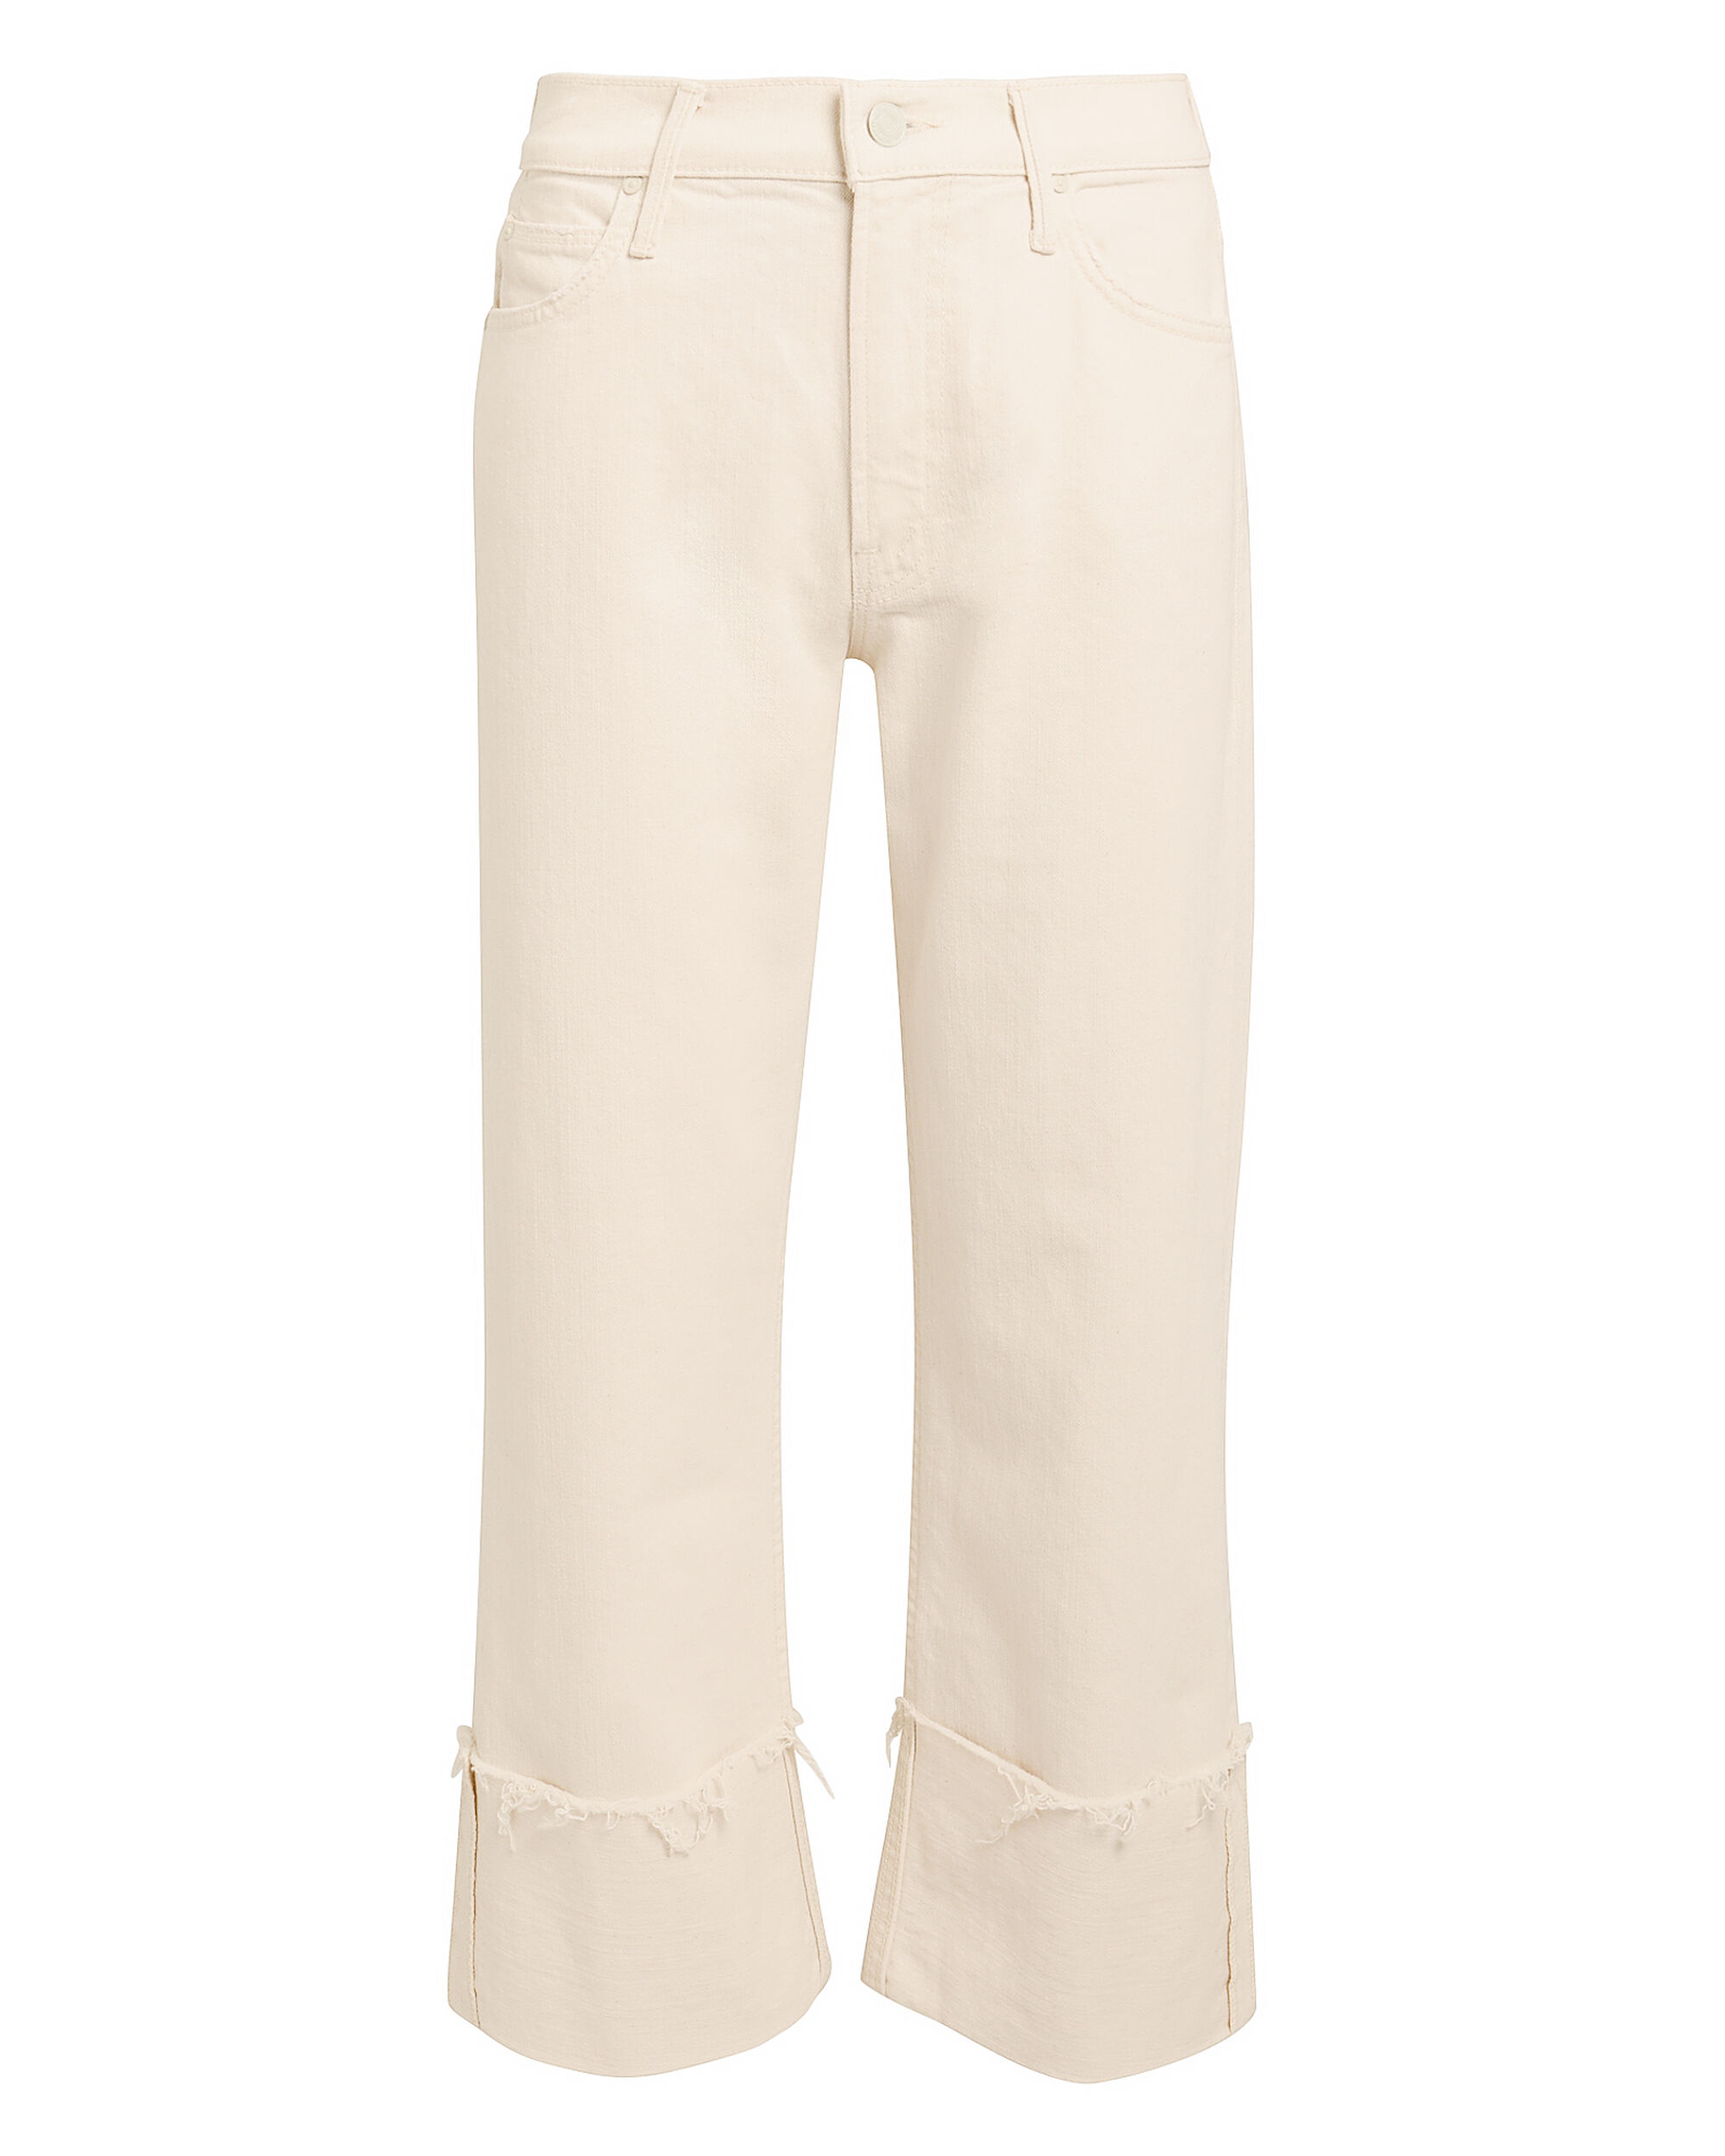 Act Natural Dusty Cuff Jeans, IVORY DENIM, hi-res